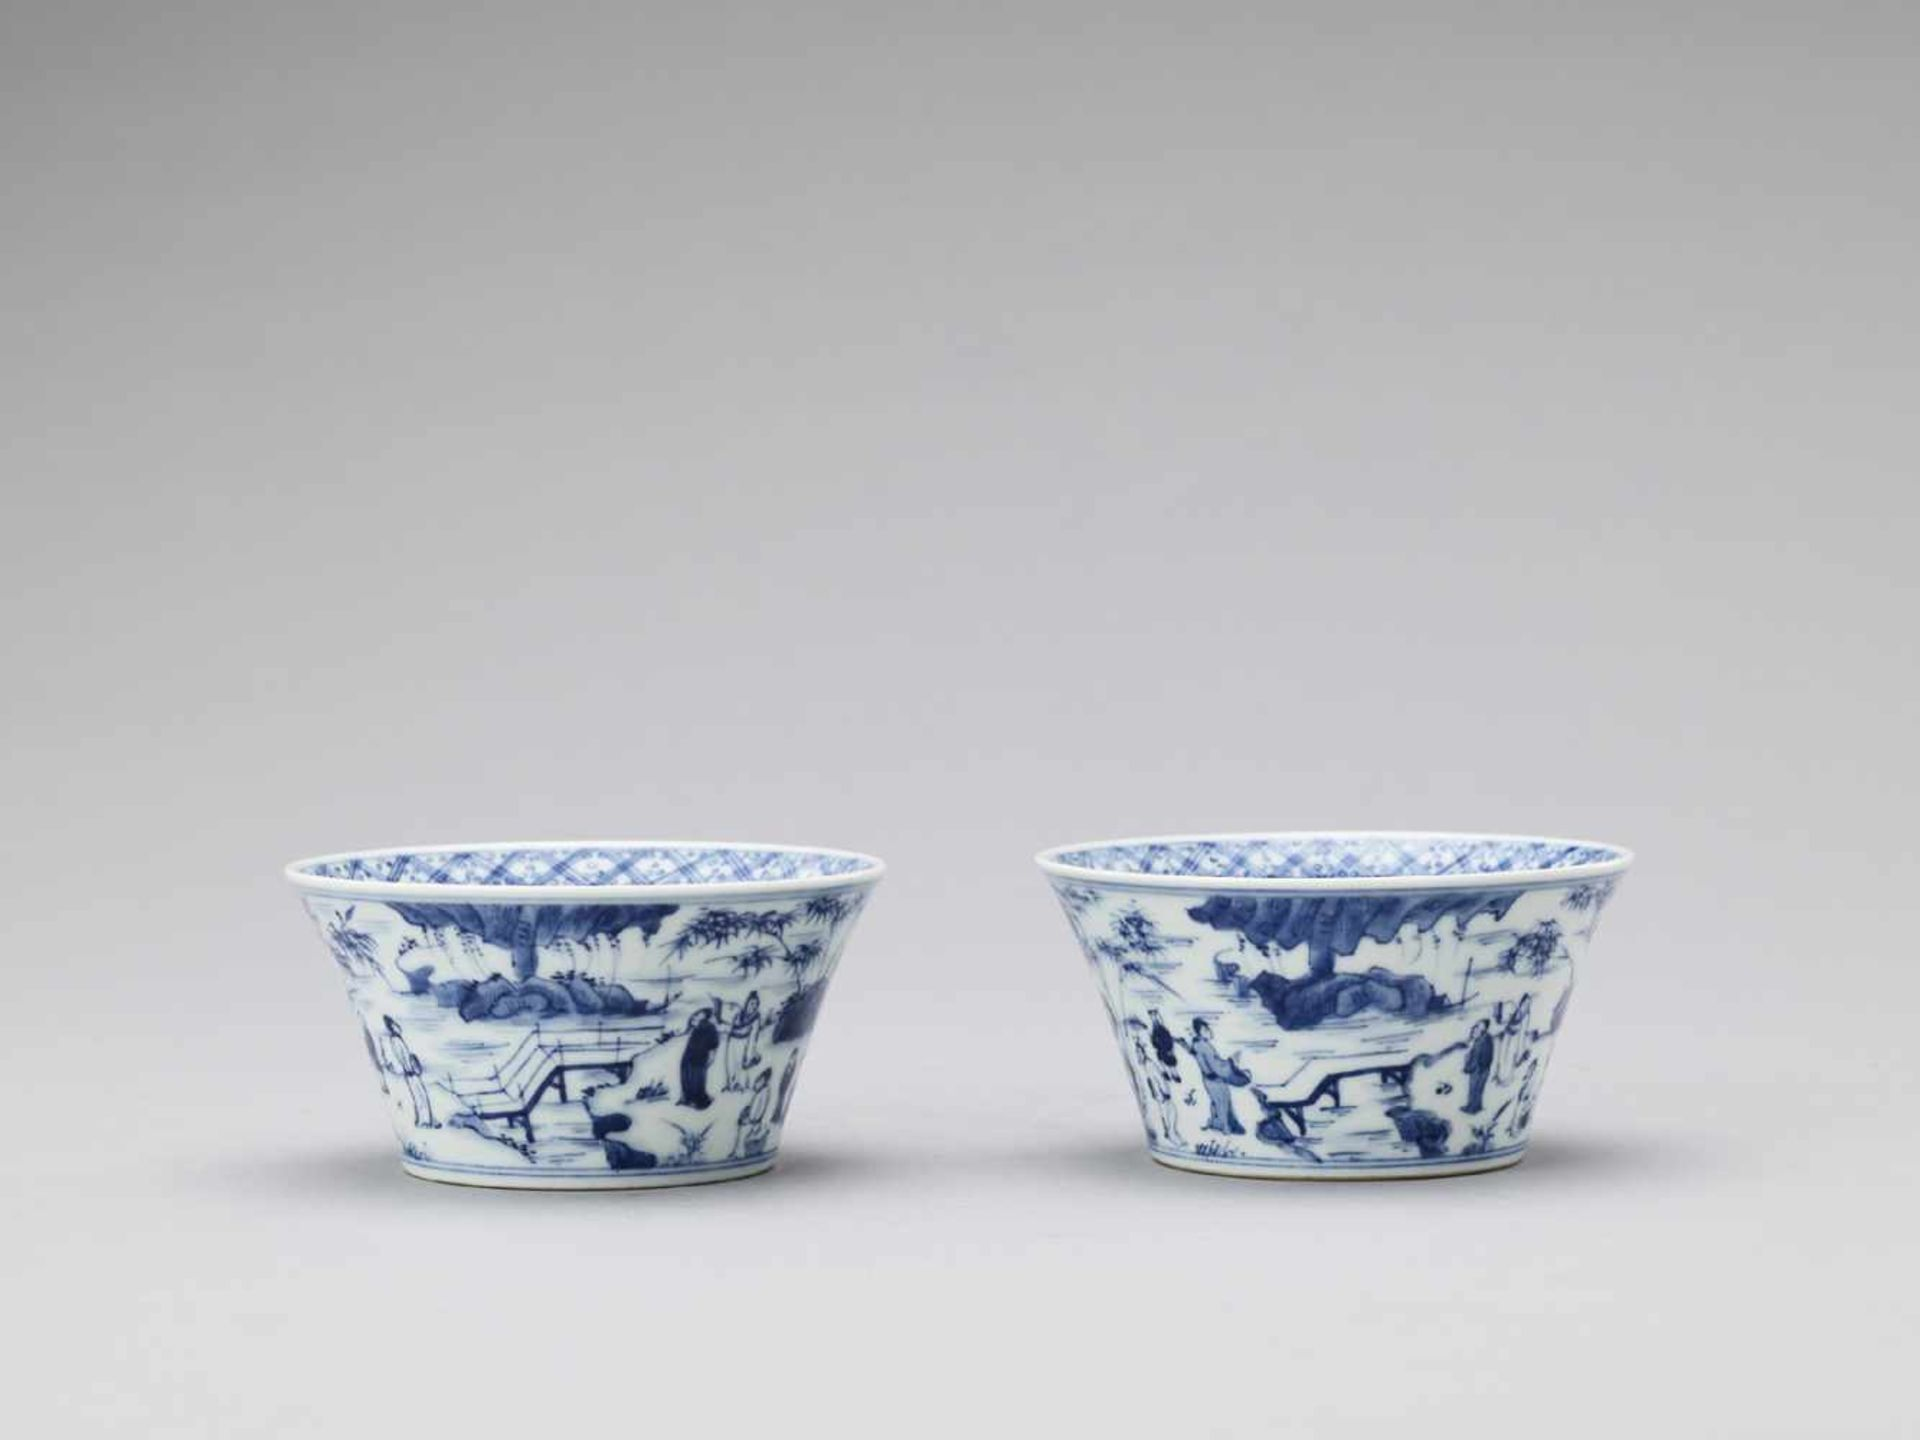 Los 446 - A PAIR OF BLUE AND WHITE PORCELAIN CUPS, REPUBLIC